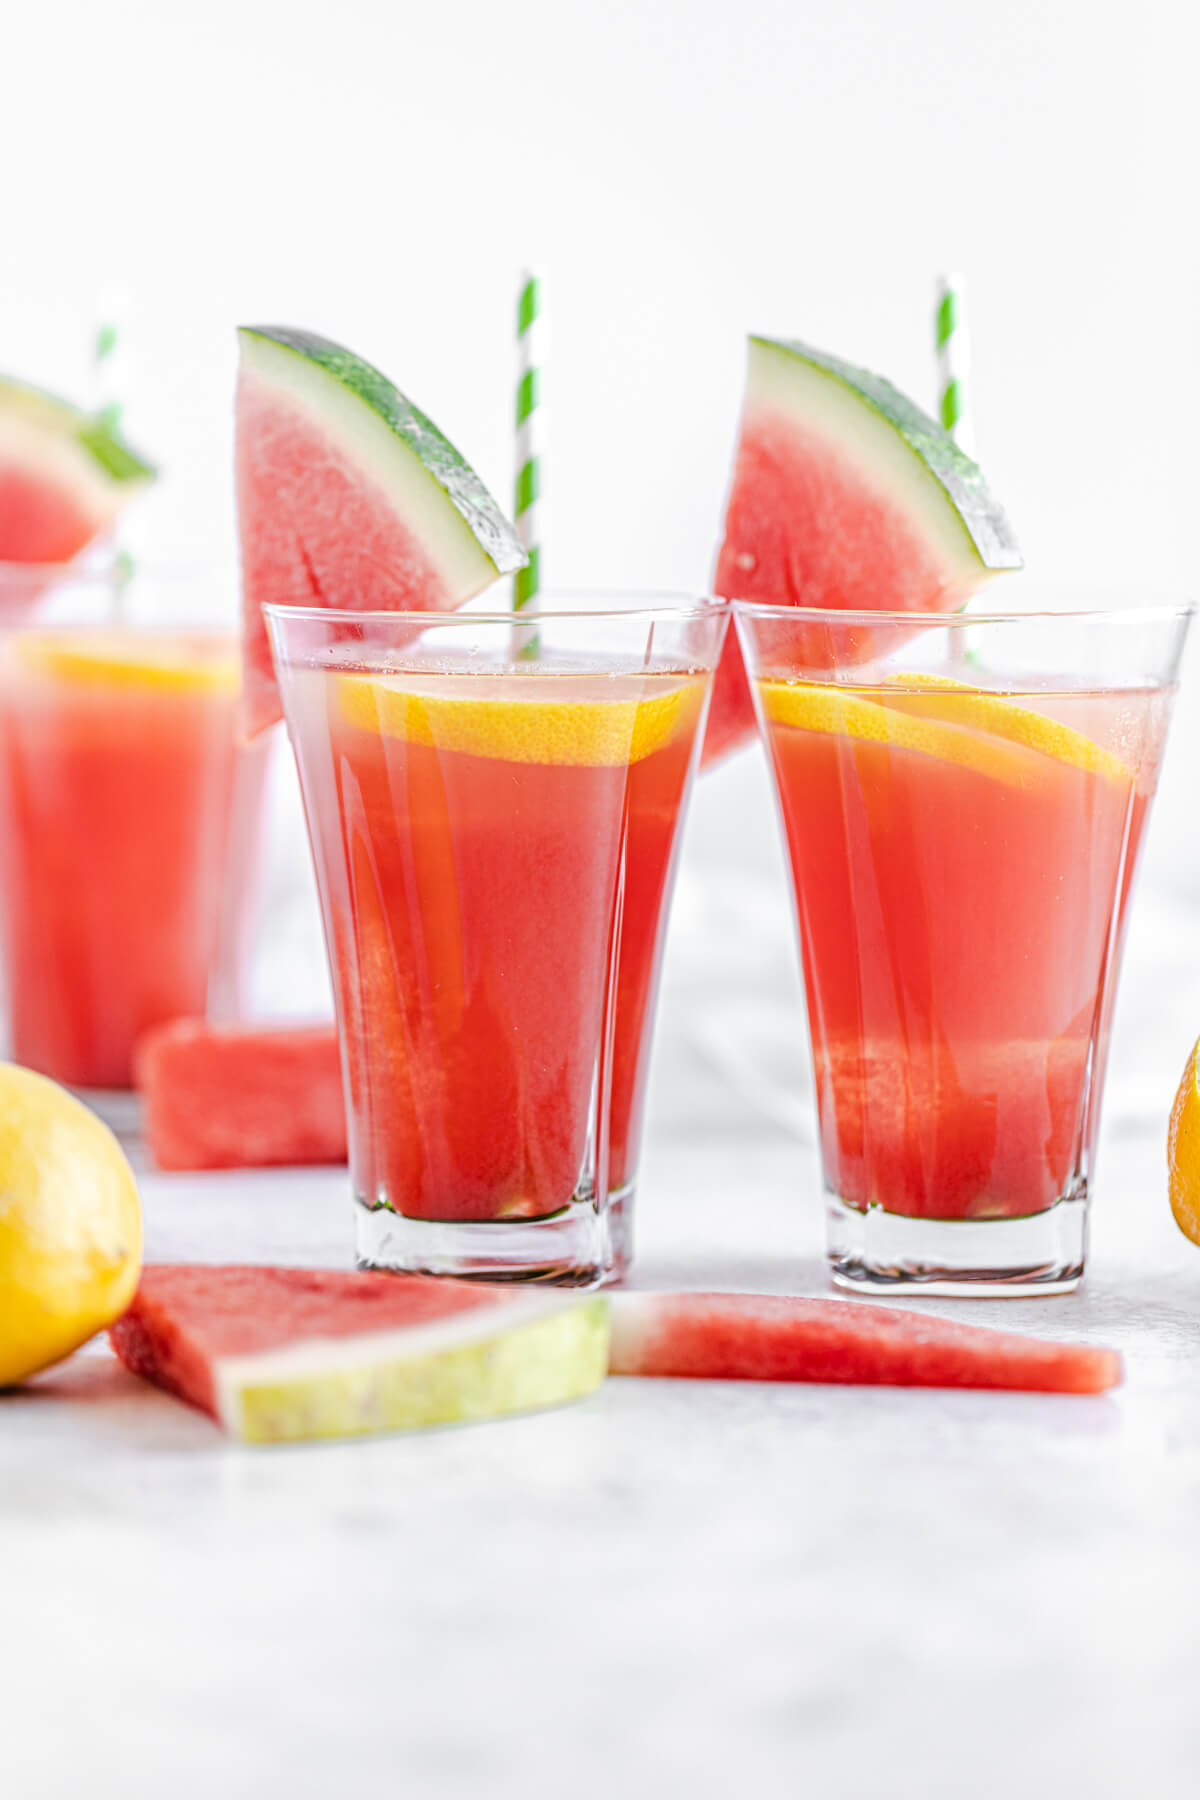 two glasses of watermelon flavoured lemonade with lemons and watermelon in front of them